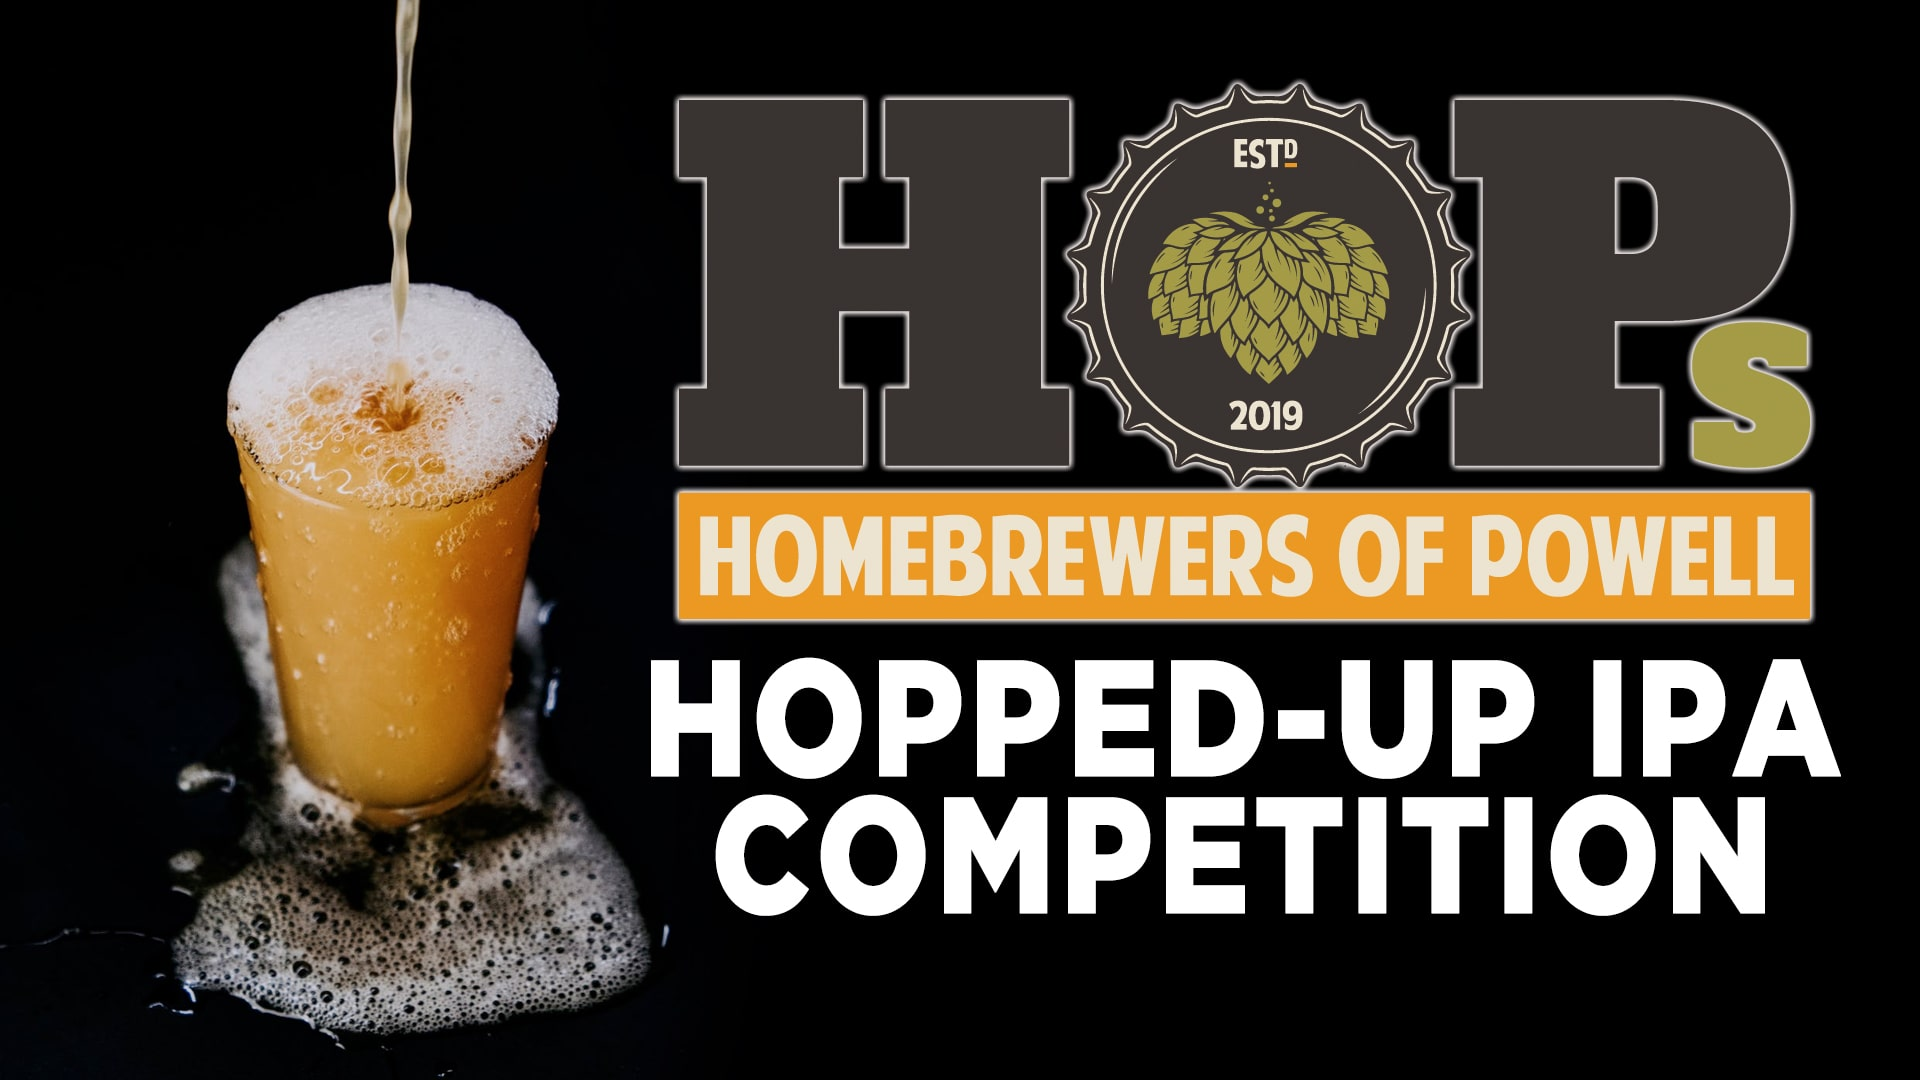 Hopped-Up IPA Competition